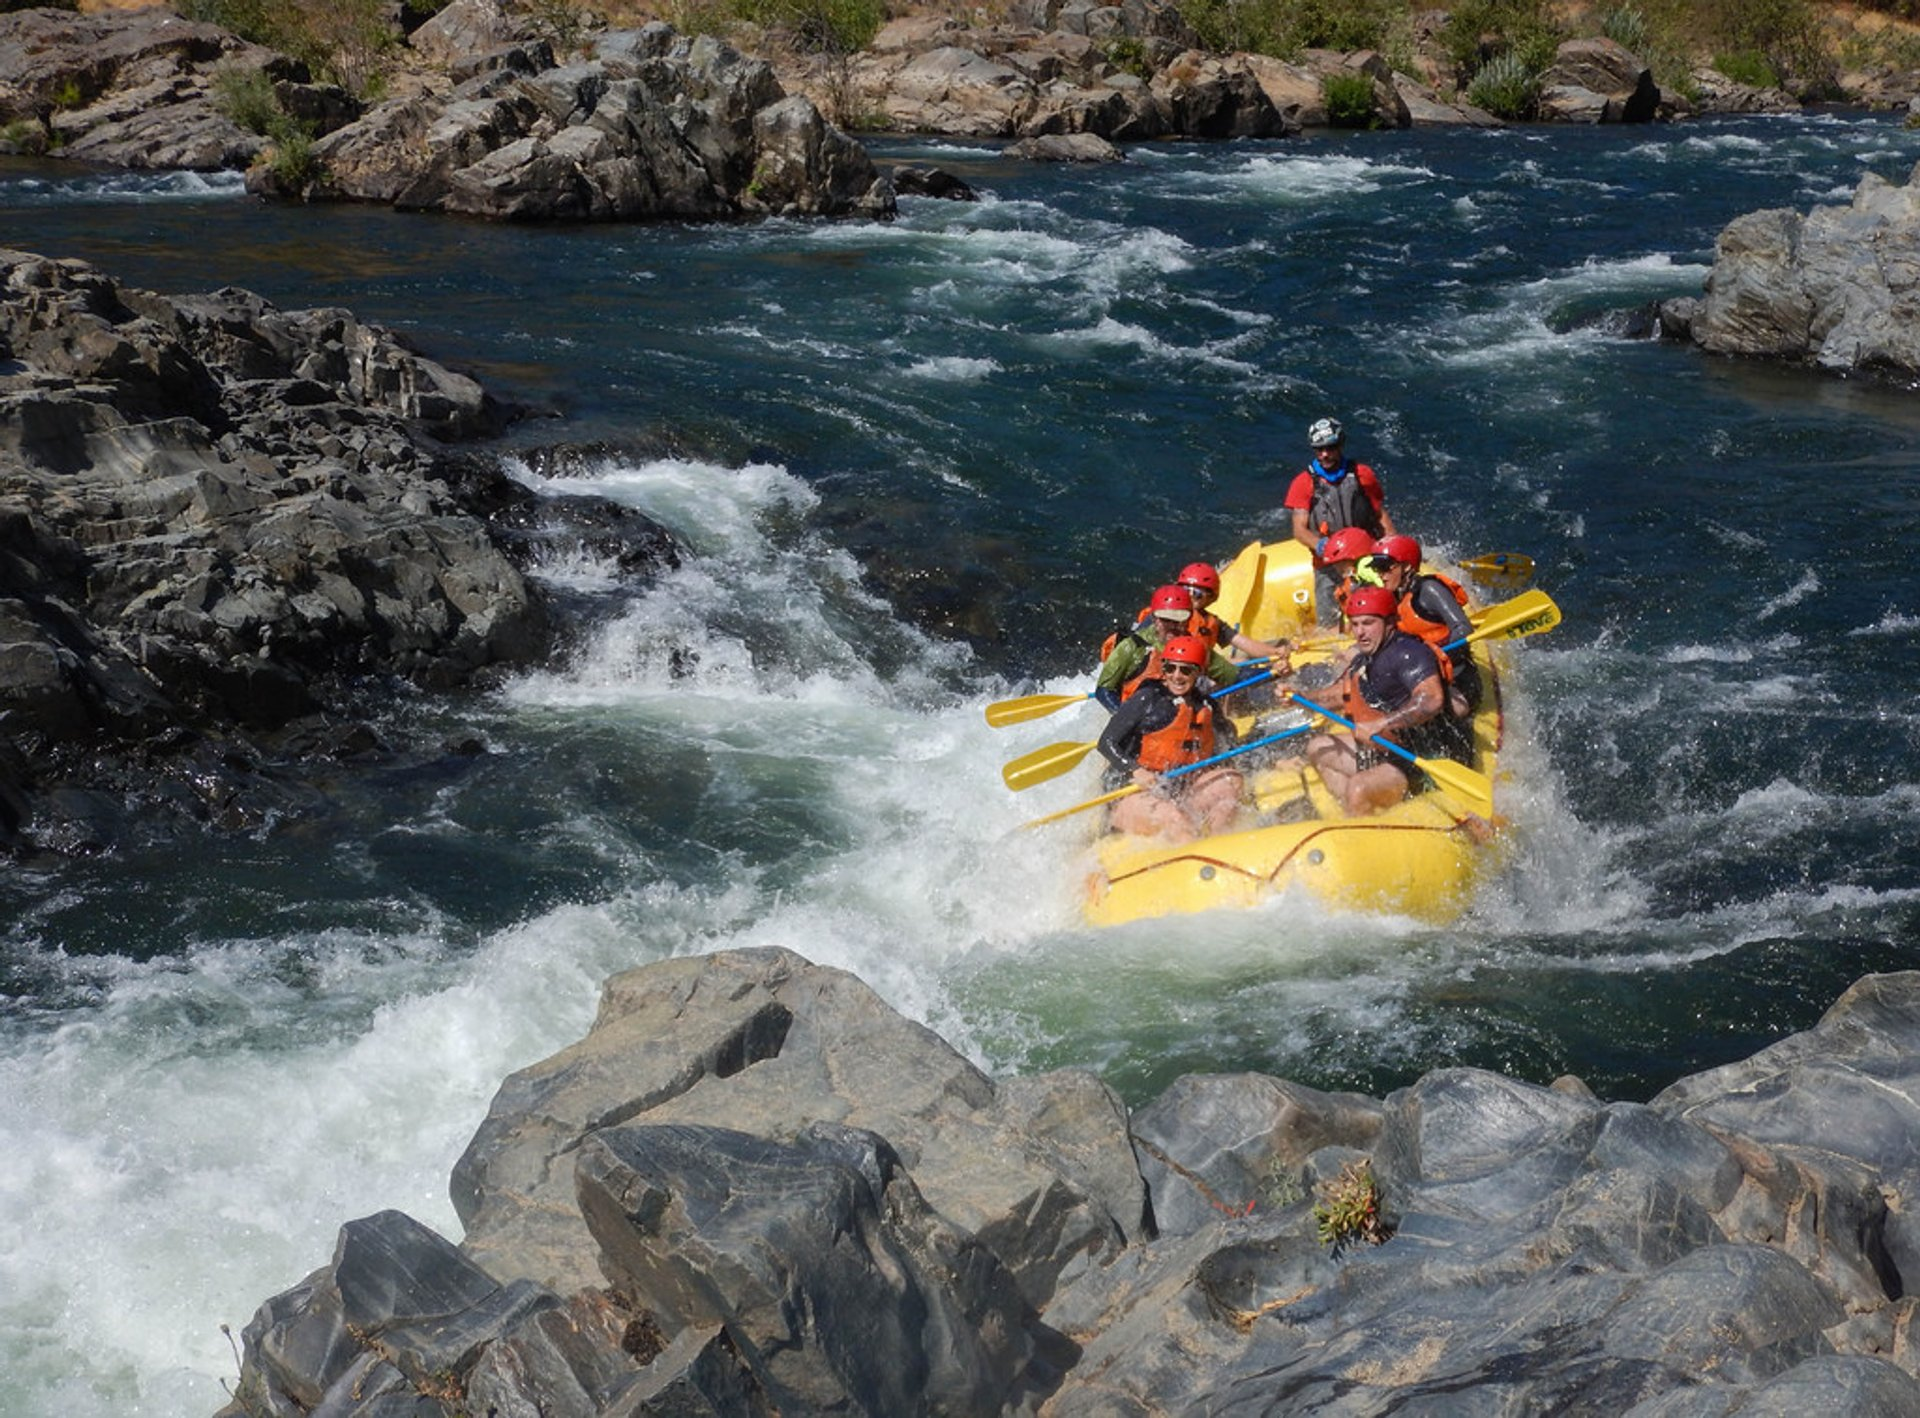 Rafting in California - Best Season 2019